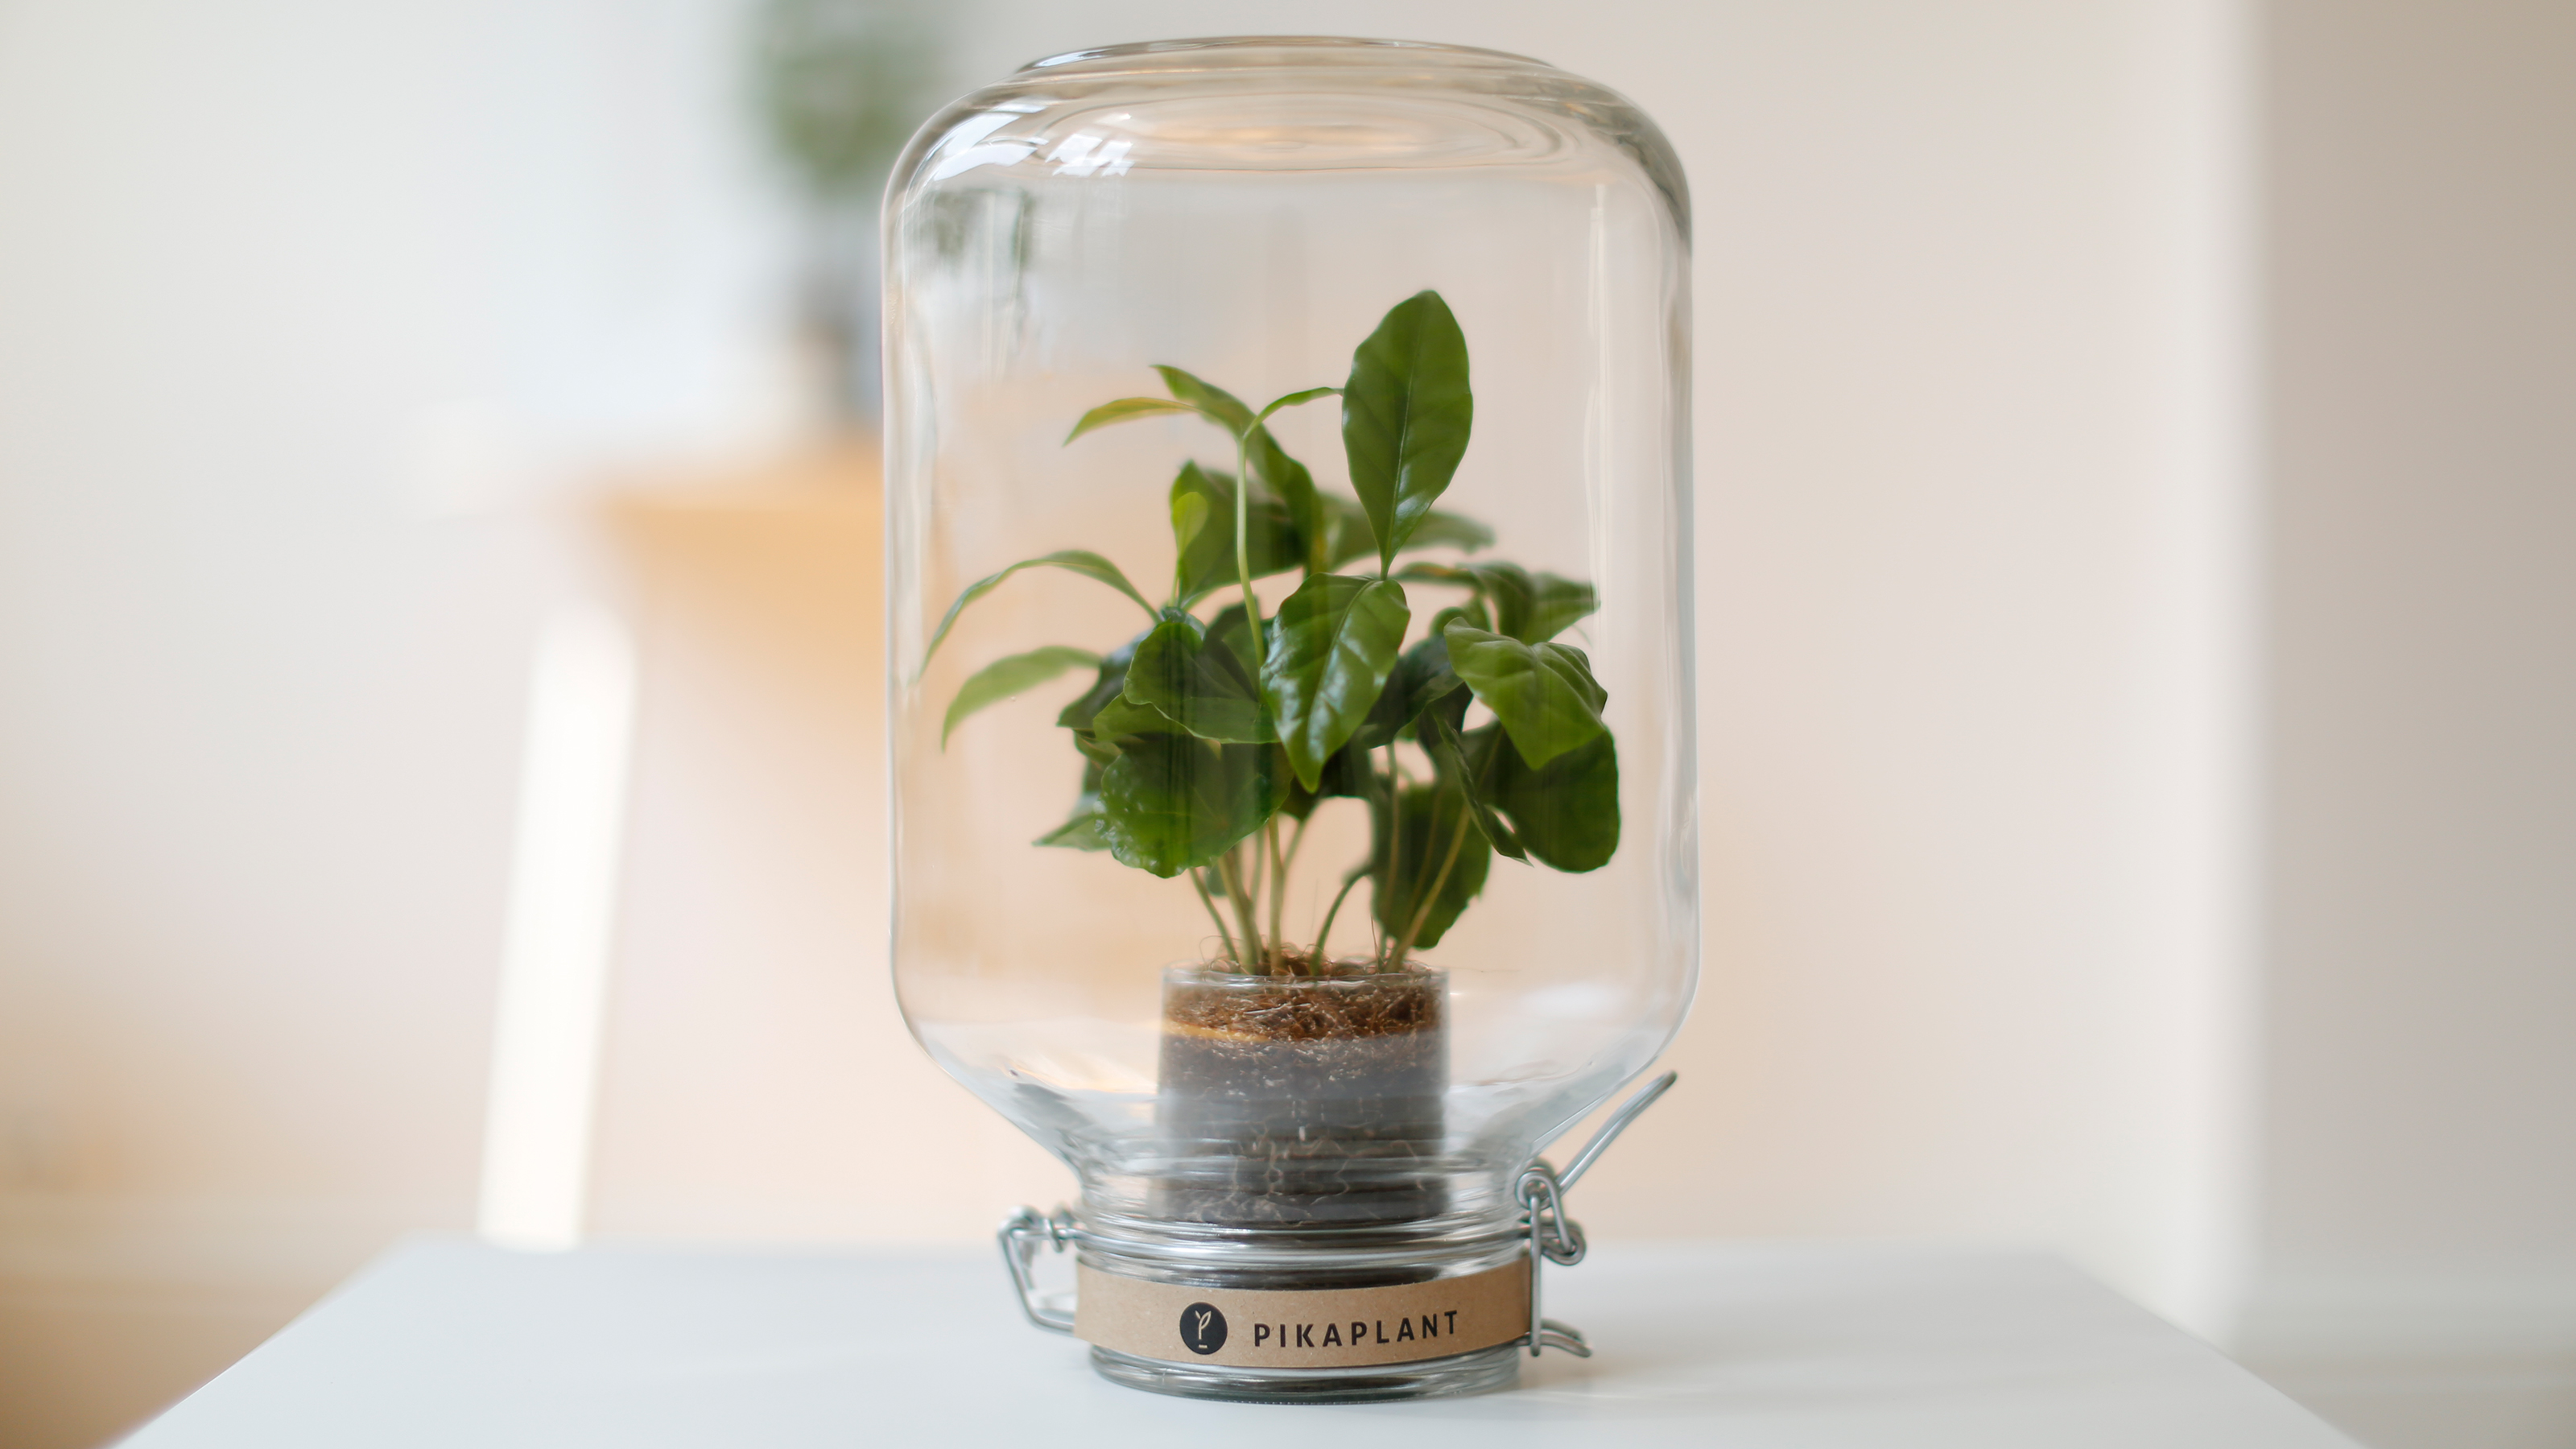 Pikaplant Automatic Plant Watering Inspired By Nature